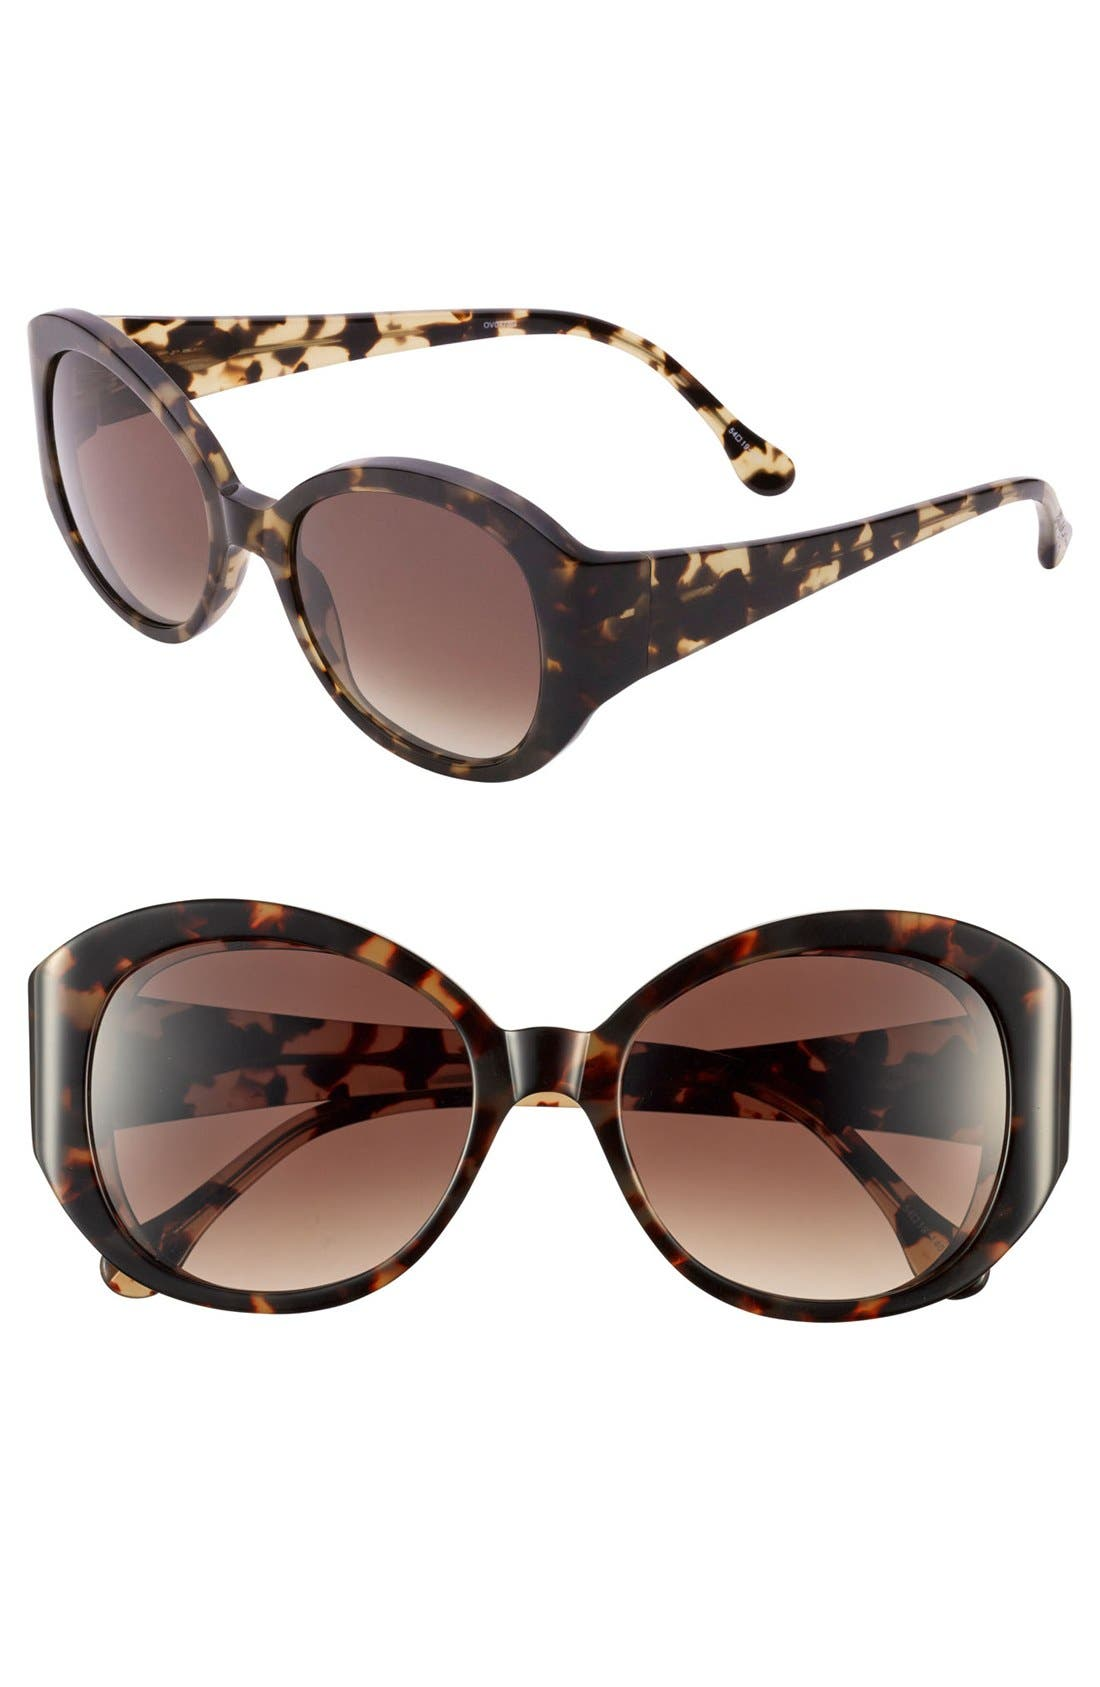 Main Image - Elizabeth and James 'Kirby' 54mm Sunglasses